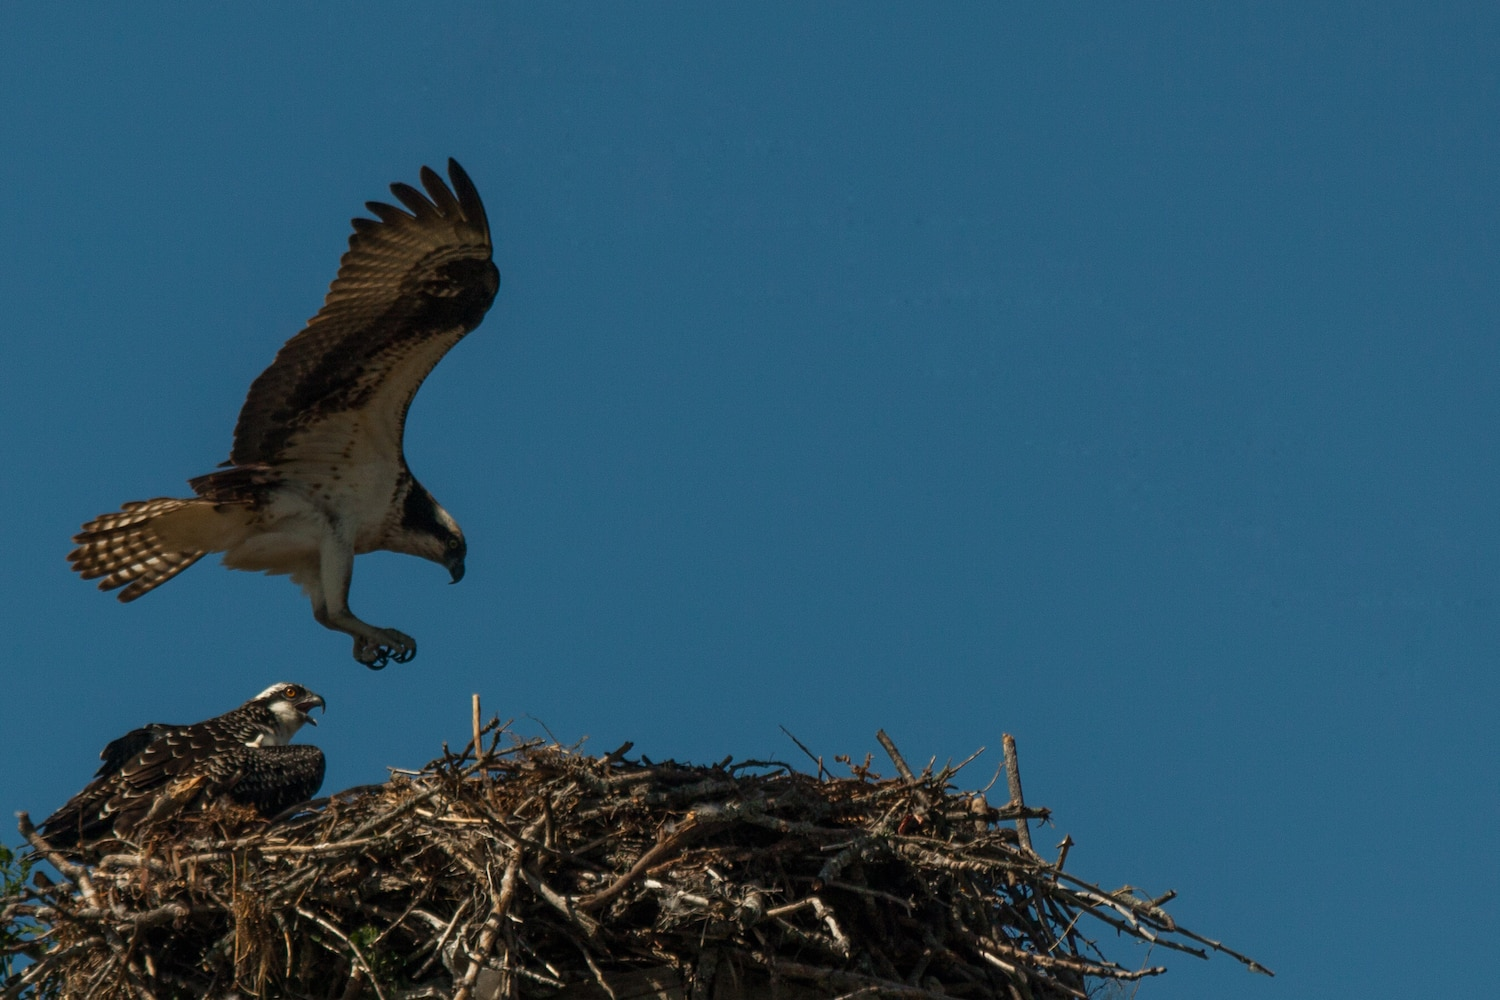 One osprey sits in a nest while another one comes in for a landing. Garden, MI, USA.